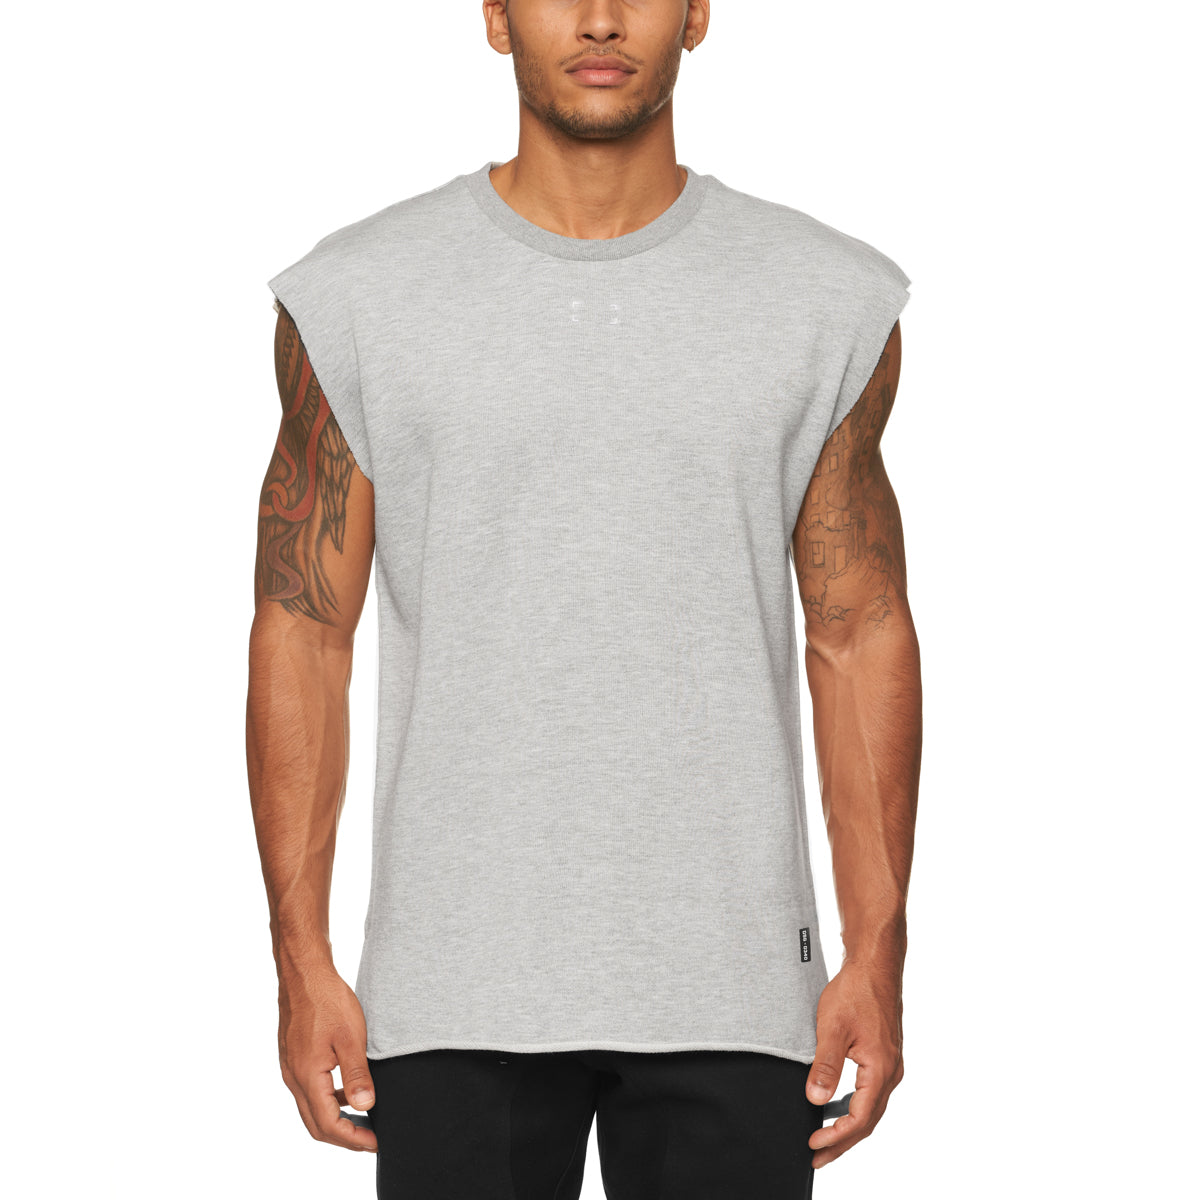 0340. French Terry Oversized Cutoff - Heather Grey